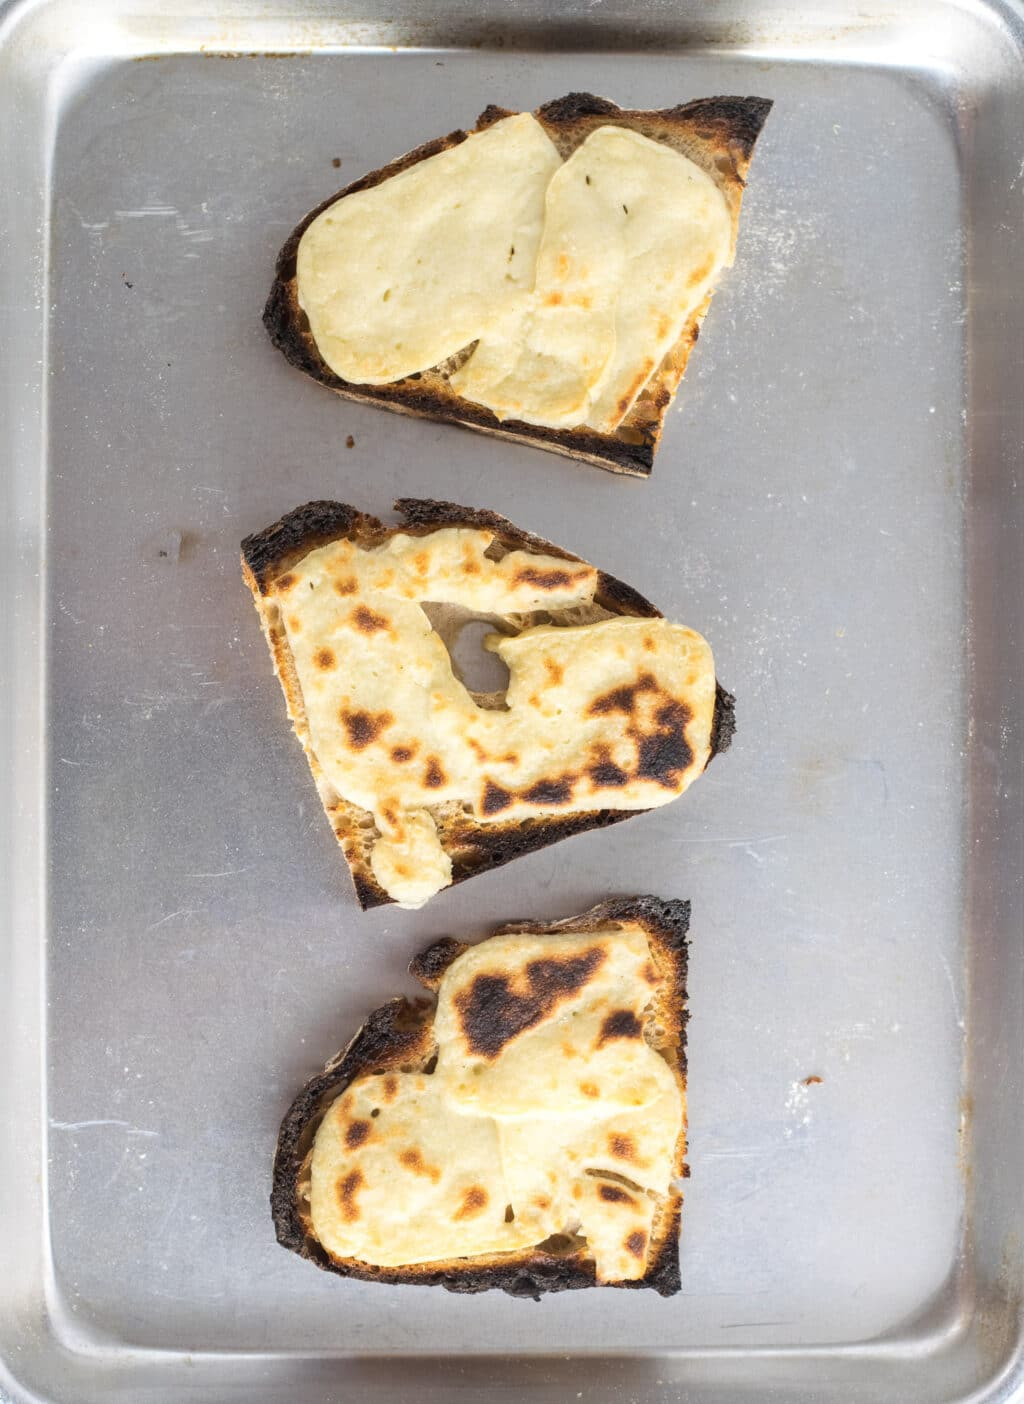 cheese broiled on bread to melt